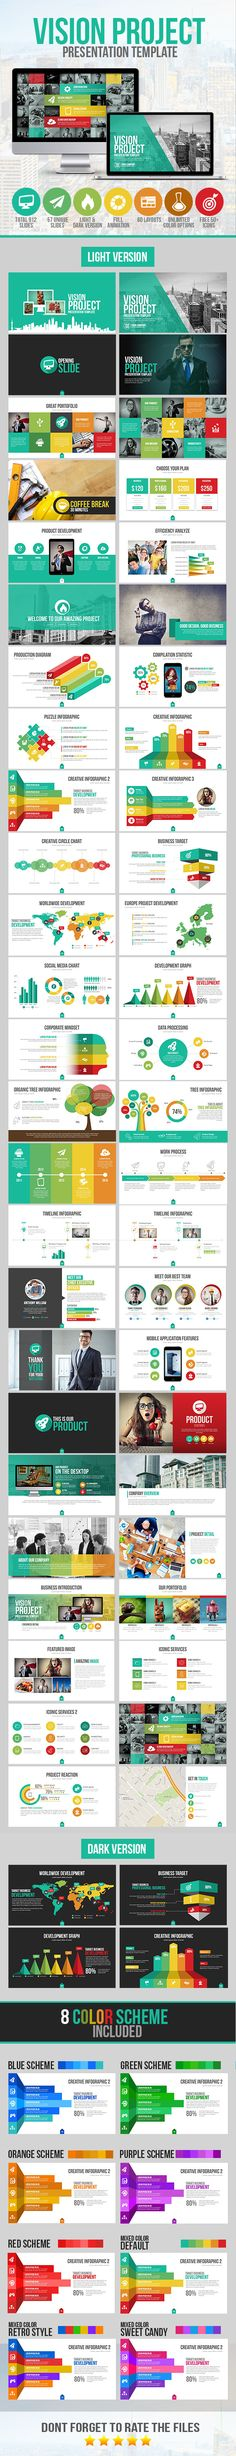 Lost multipurpose presentation template business powerpoint vision project presentation template toneelgroepblik Image collections